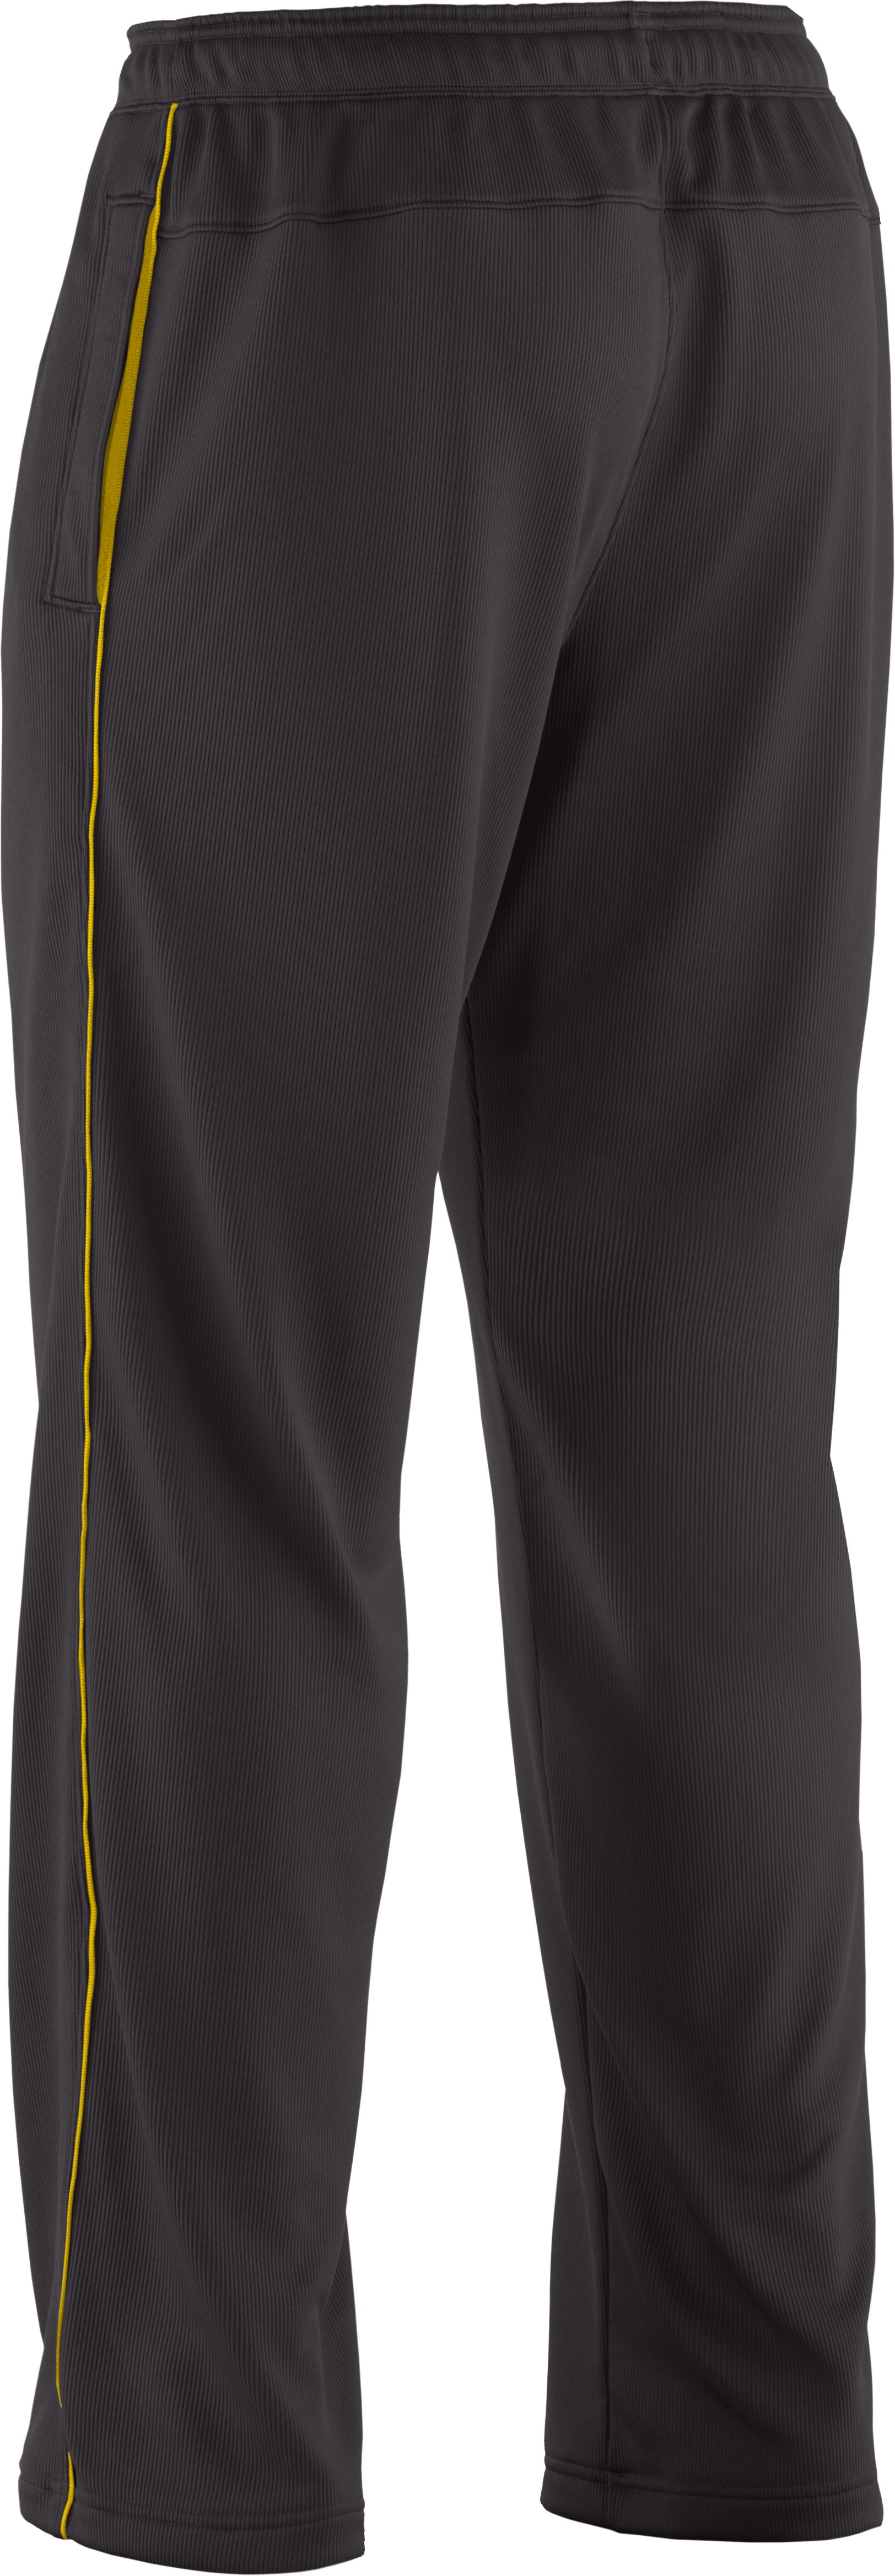 Men's UA Motion Warm-Up Pants, Charcoal